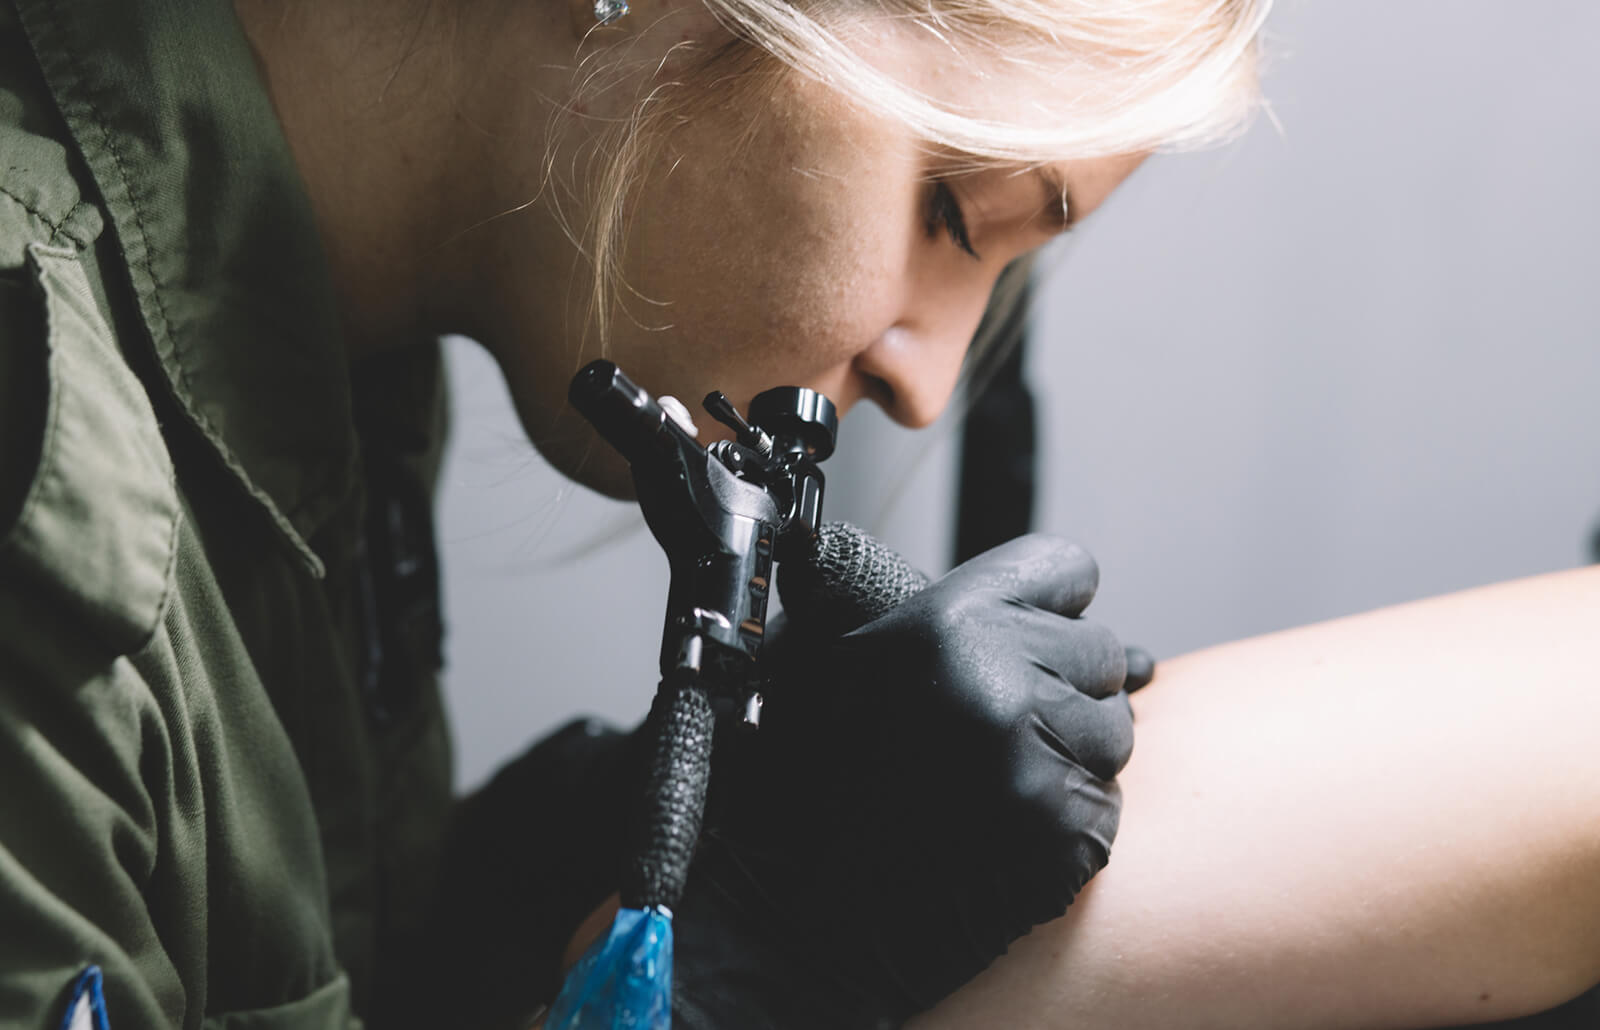 Skin Colored Tattoos To Cover Scars Lovetoknow